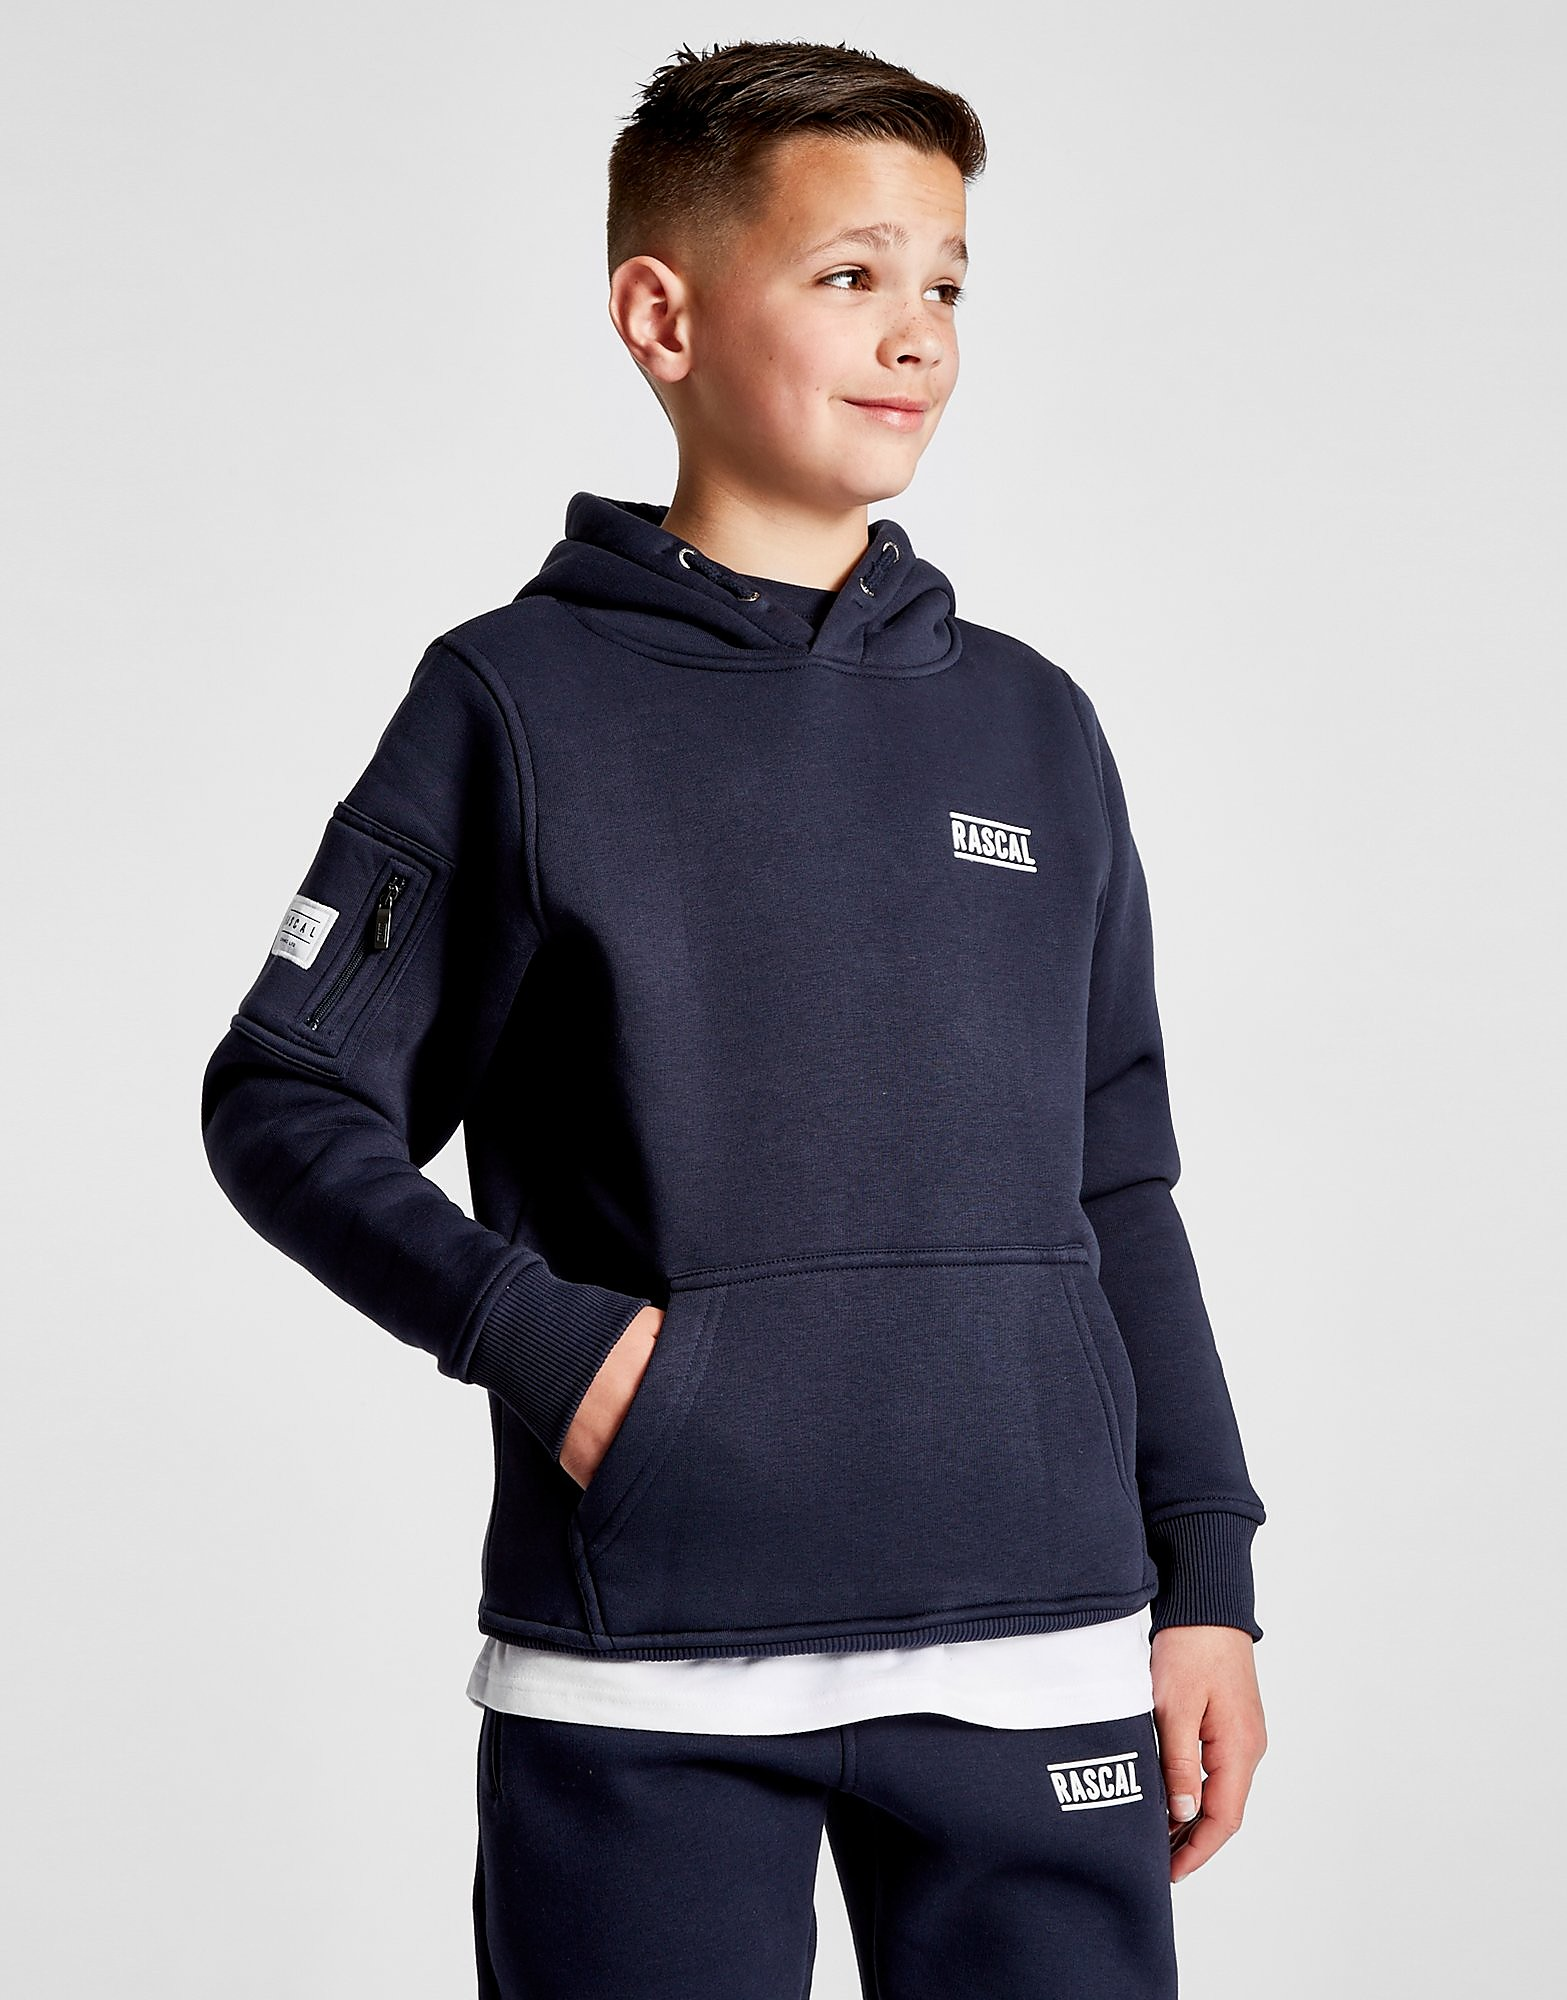 Rascal Essential Fleece Overhead Hoodie Junior